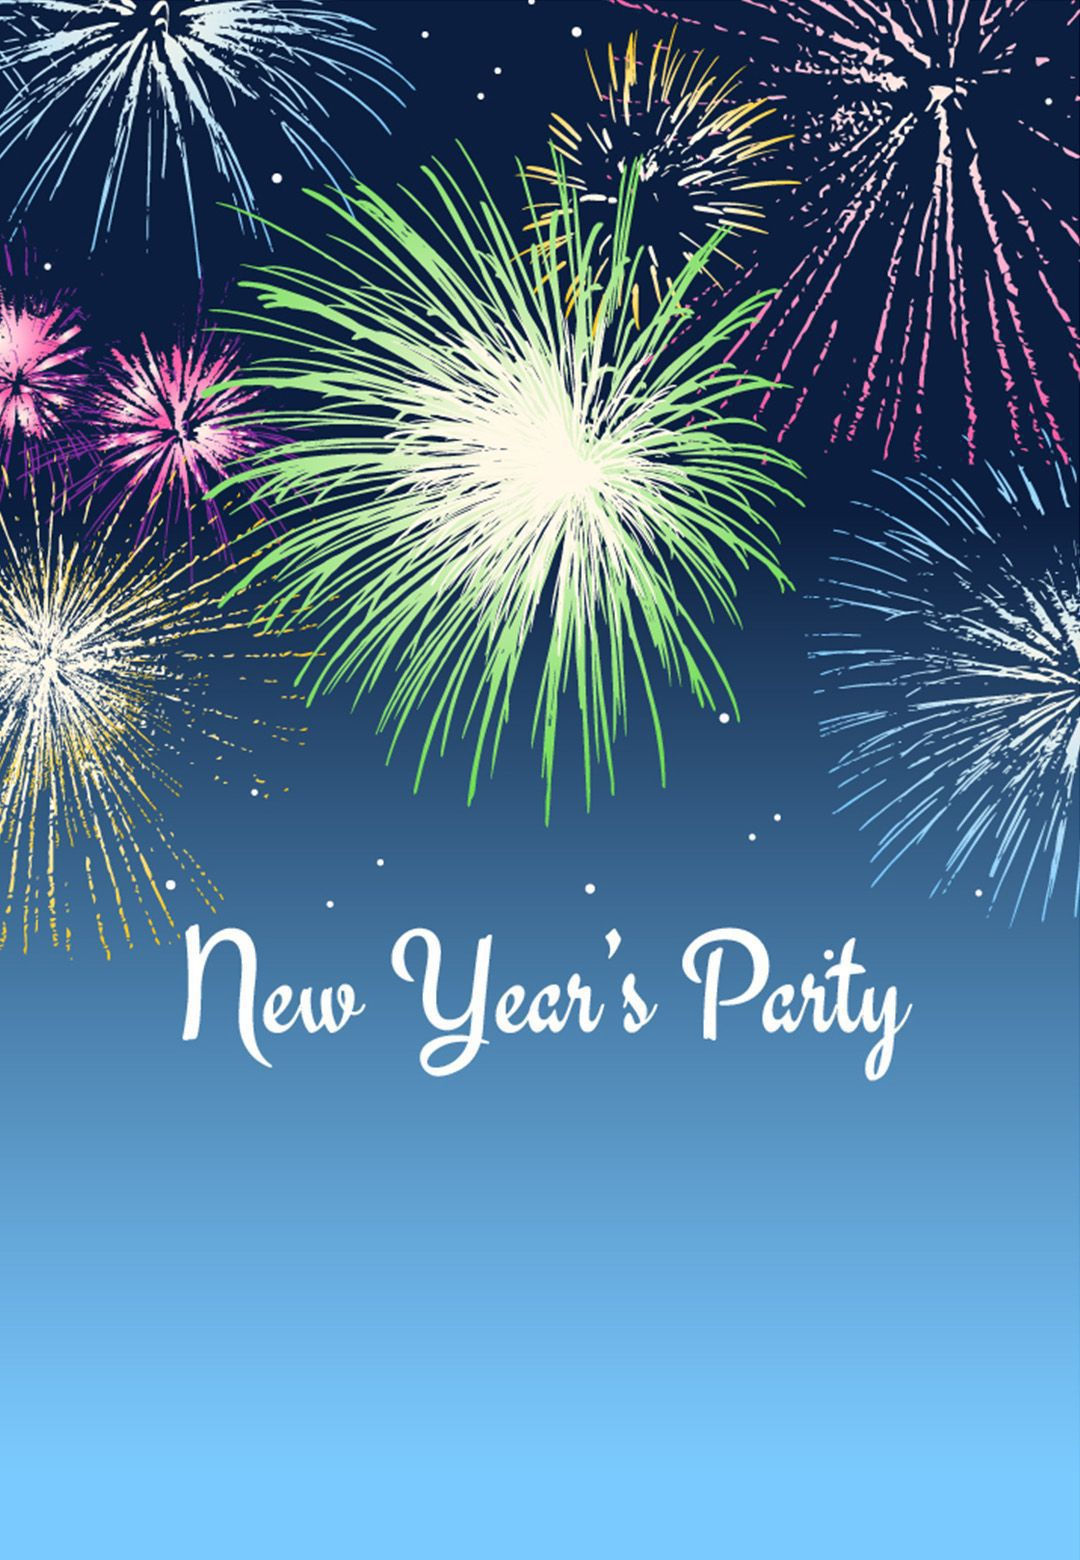 002 Awesome New Year Eve Invitation Template Inspiration  Party Free WordFull